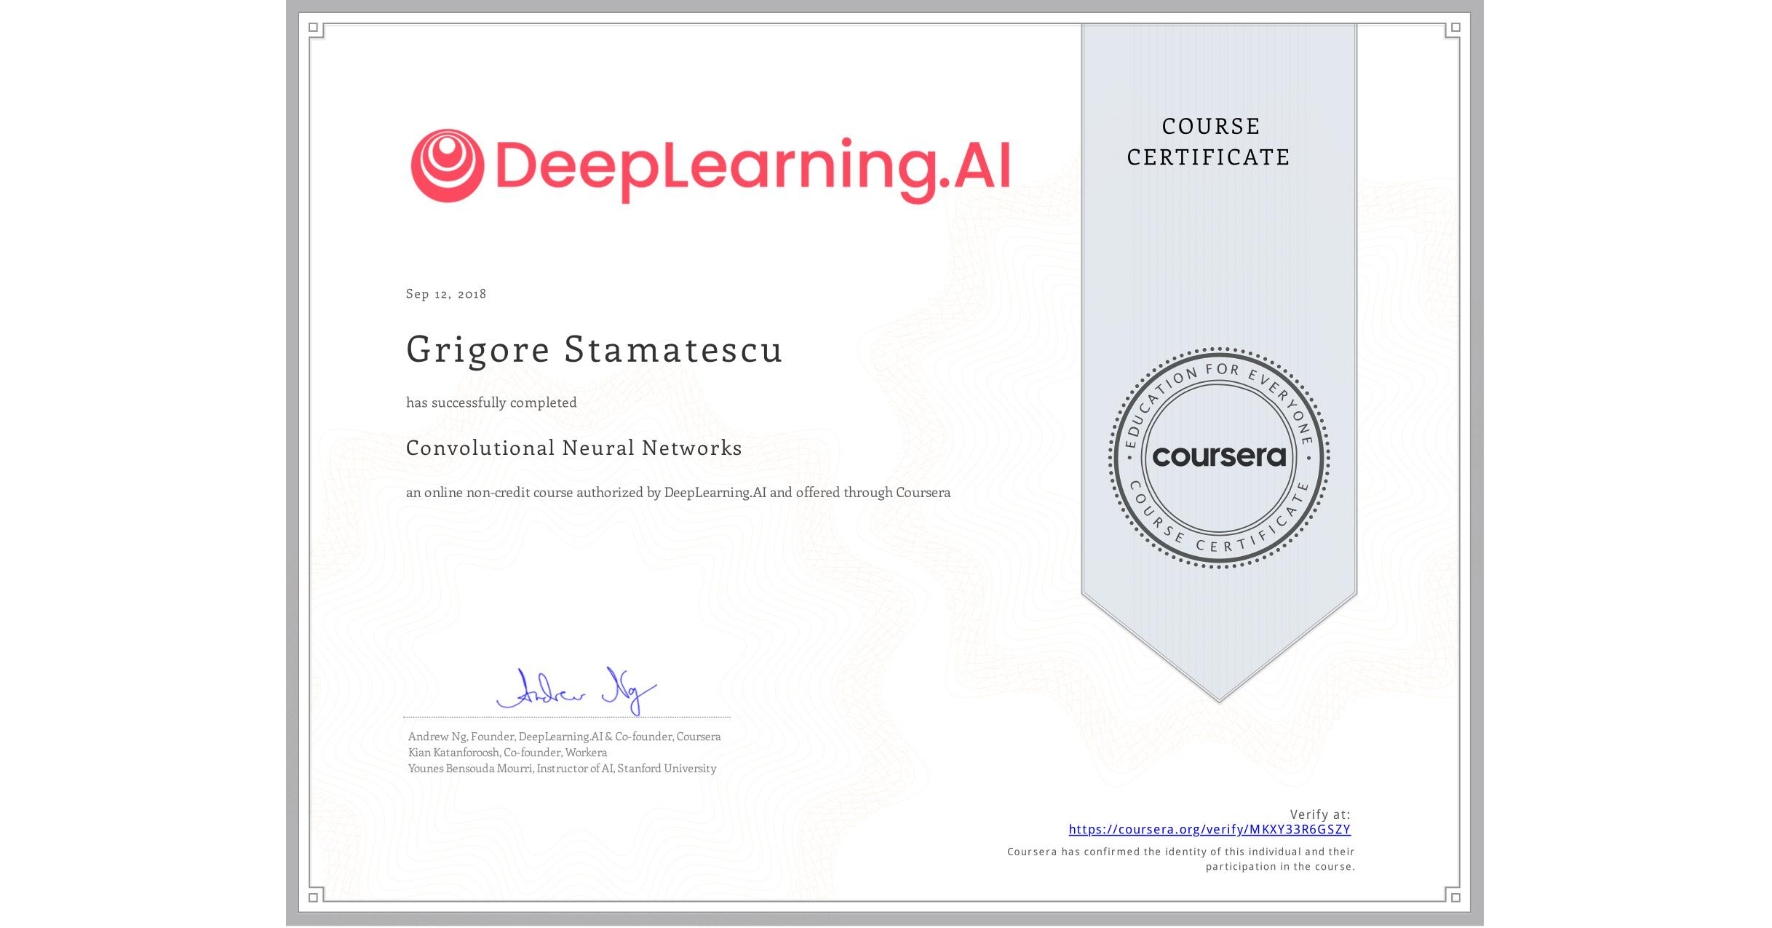 View certificate for Grigore Stamatescu, Convolutional Neural Networks, an online non-credit course authorized by DeepLearning.AI and offered through Coursera